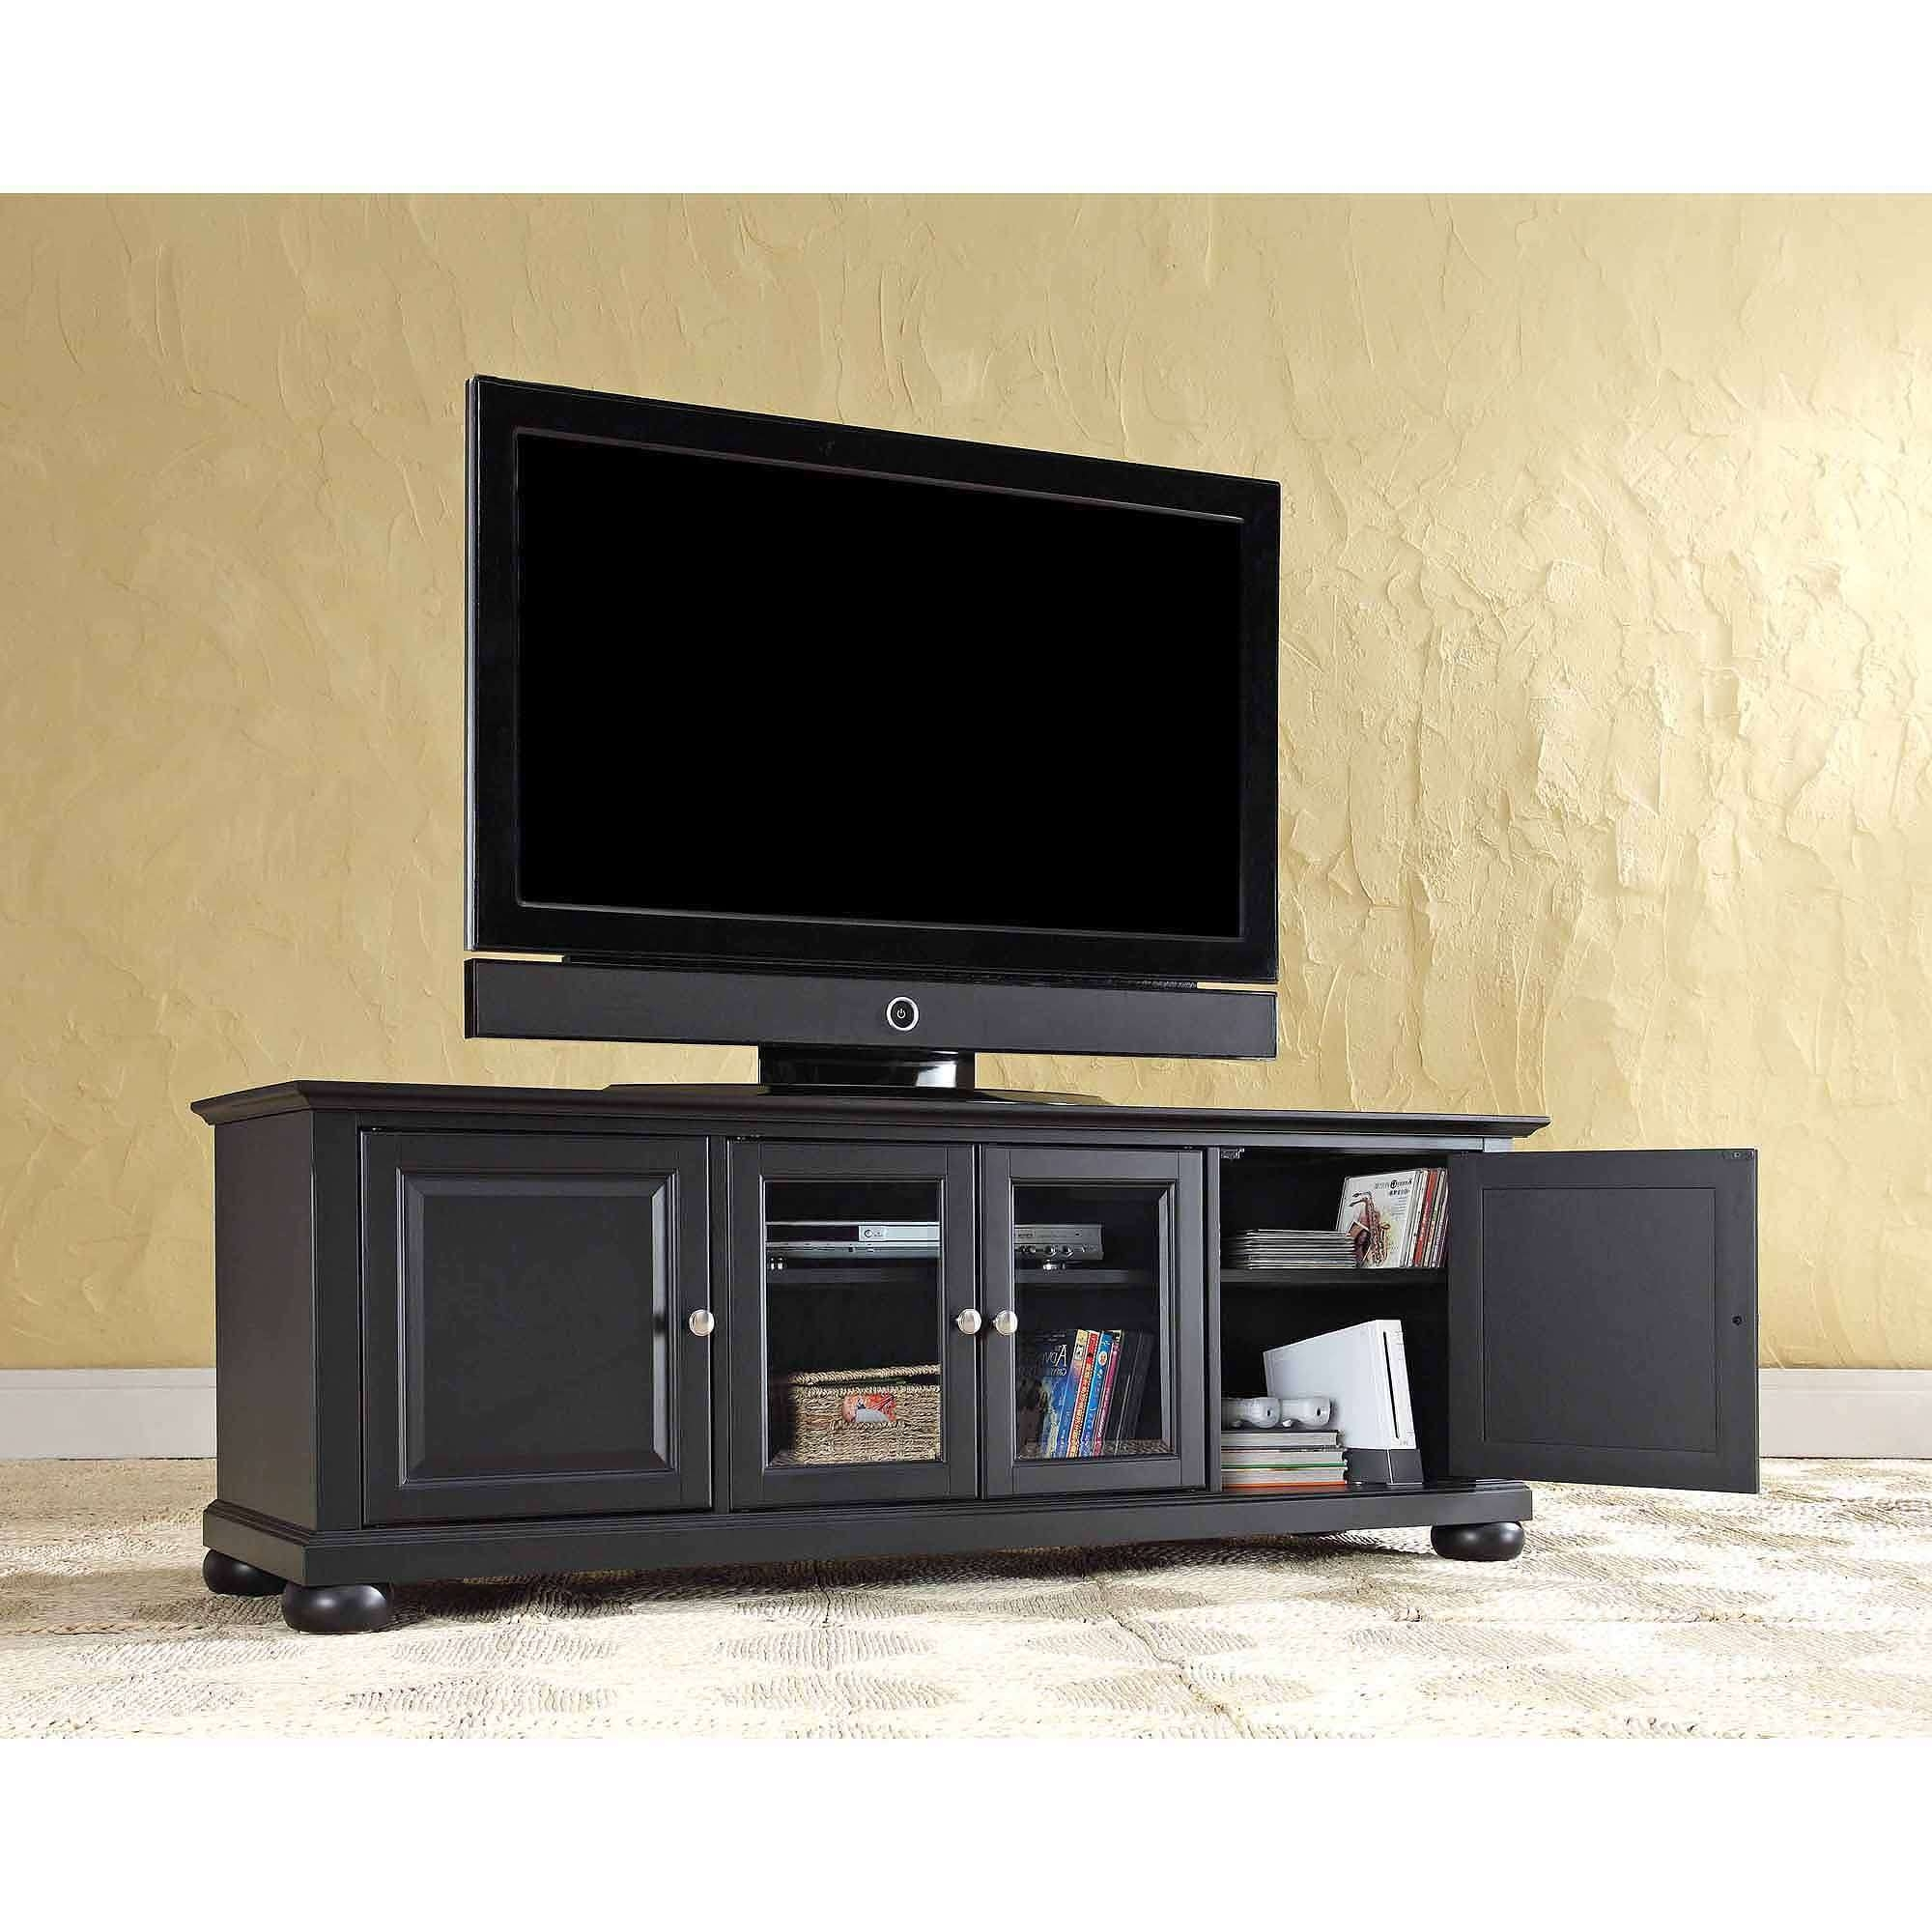 Inspirational Tv Stands For 60 Inch Tv 22 About Remodel Modern Intended For Modern 60 Inch Tv Stands (Gallery 2 of 20)